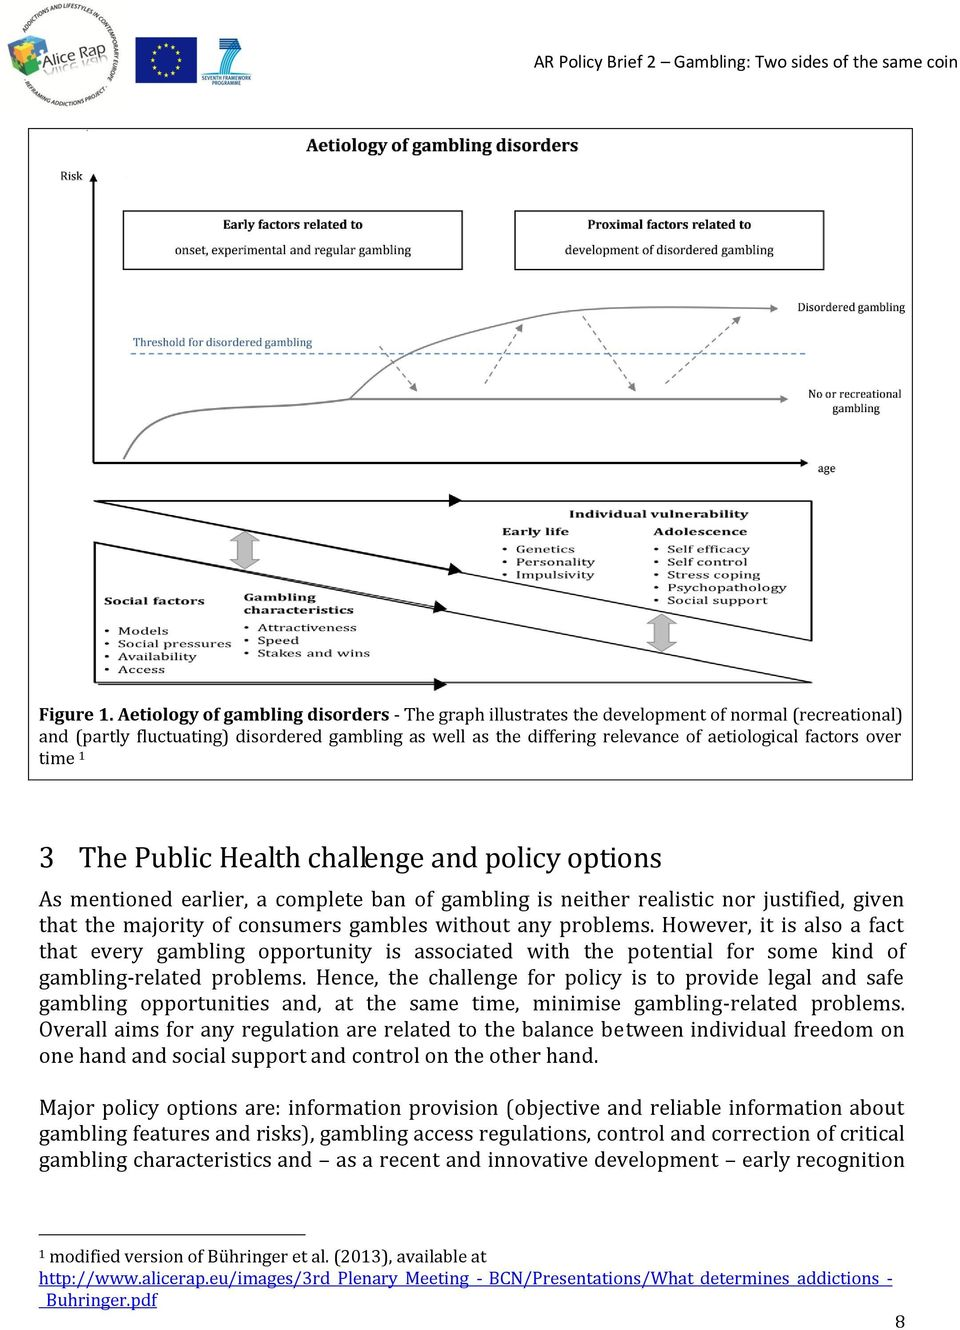 factors over time 1 3 The Public Health challenge and policy options As mentioned earlier, a complete ban of gambling is neither realistic nor justified, given that the majority of consumers gambles